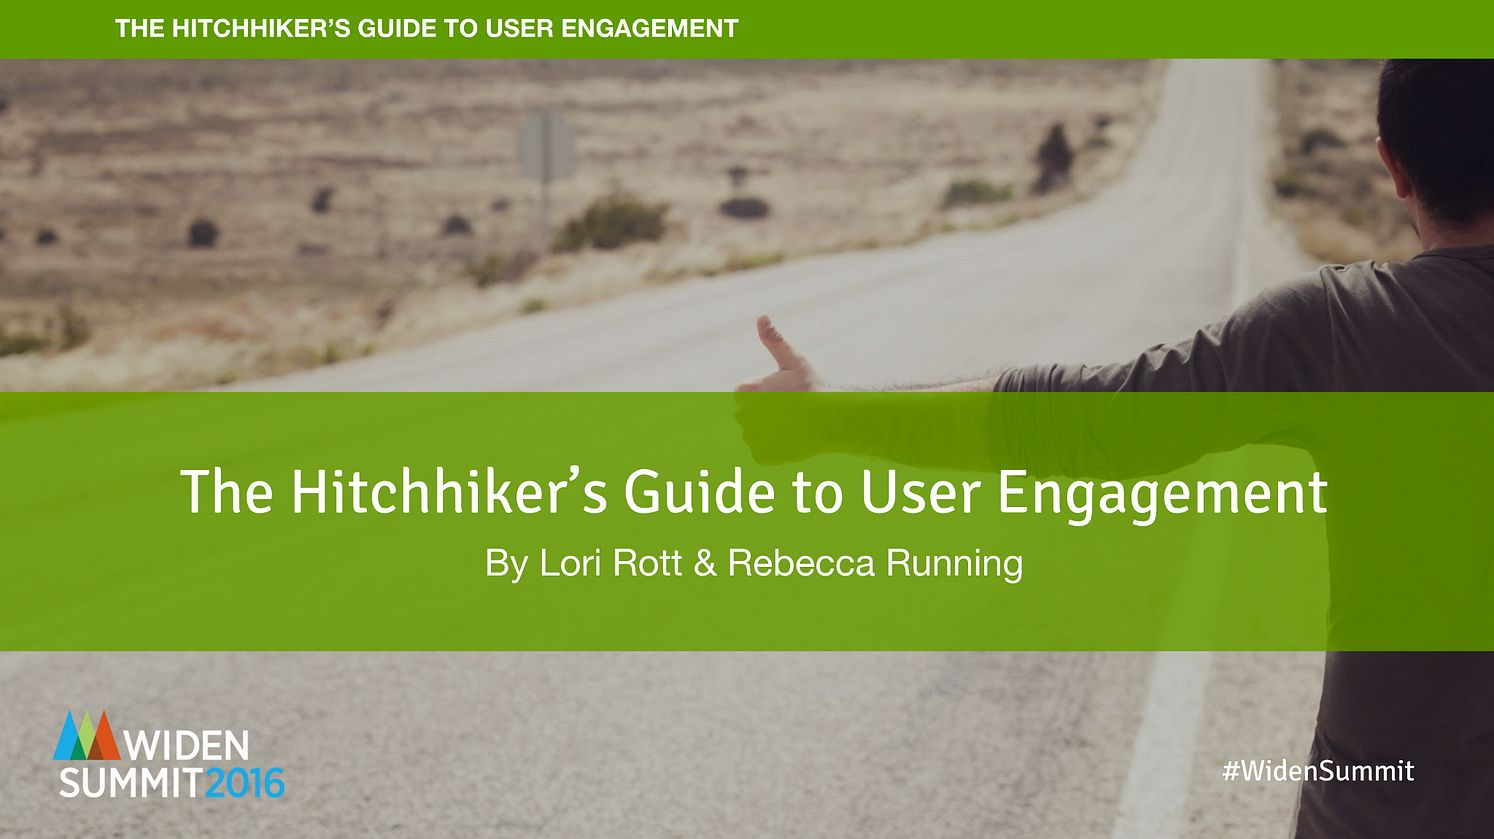 The Hitchhikers Guide to User Engagement